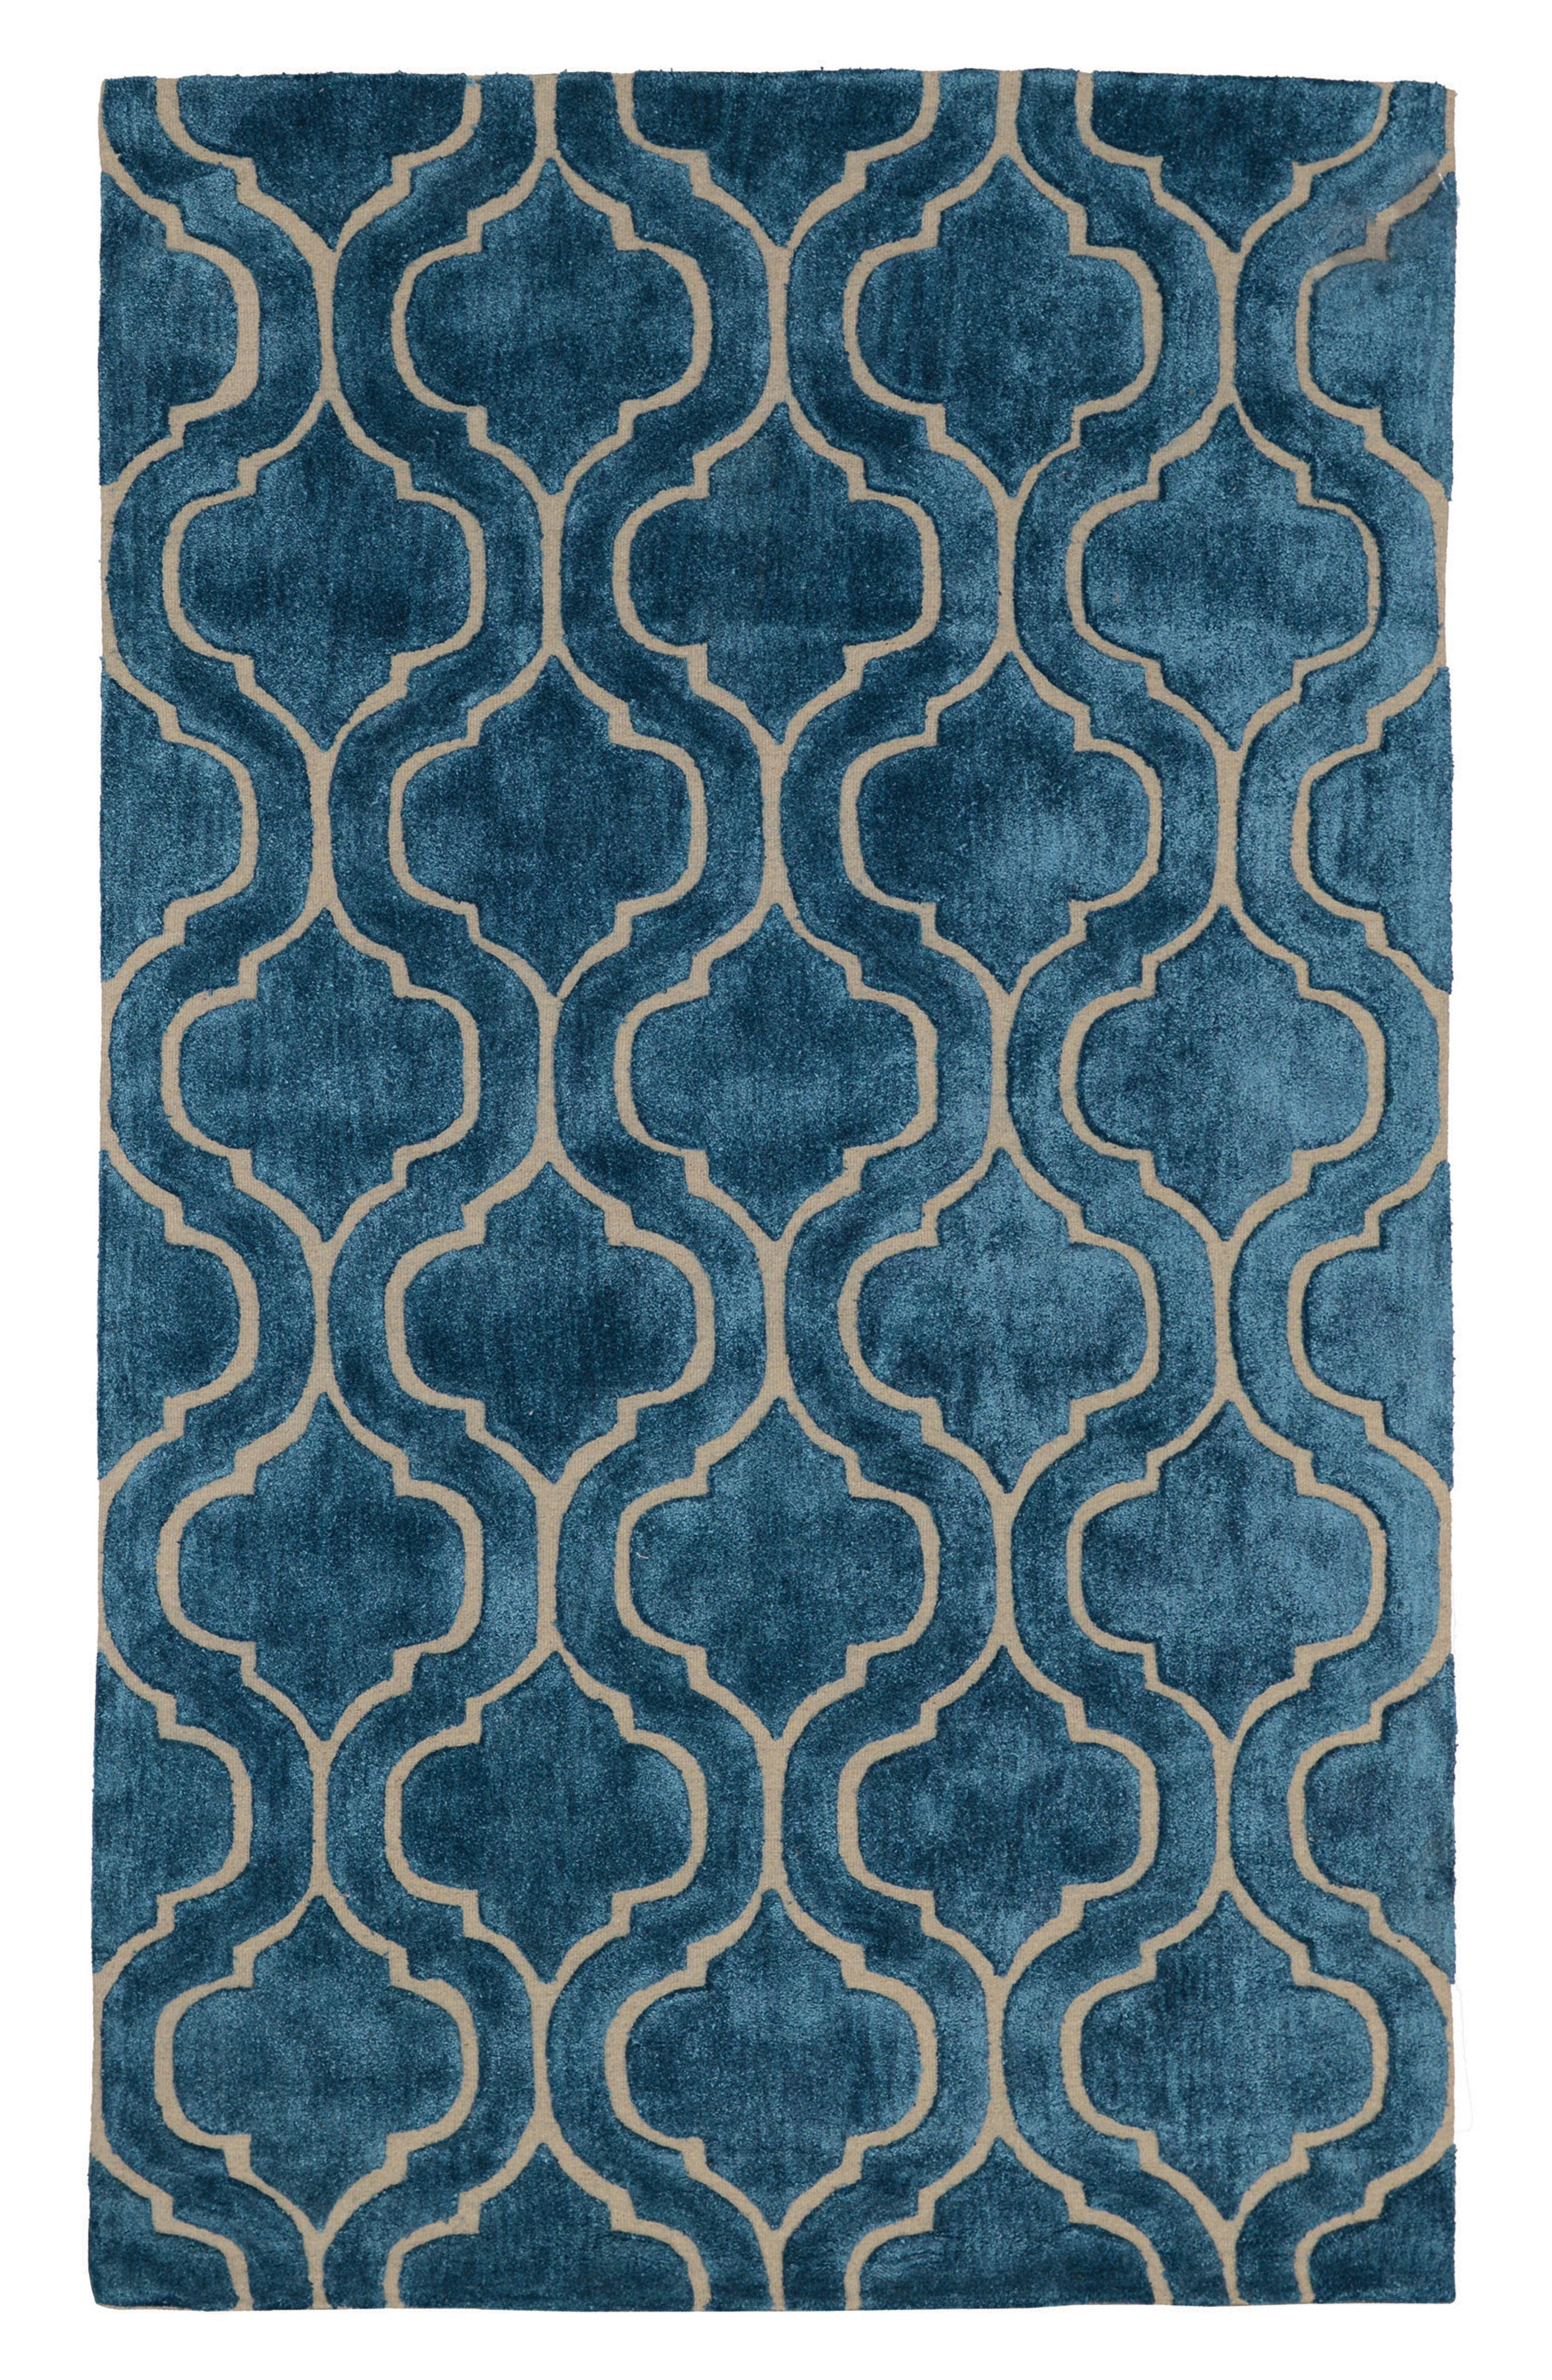 Villa Home 'Over Tufted - Blue Jay' Rug,                             Alternate thumbnail 2, color,                             400